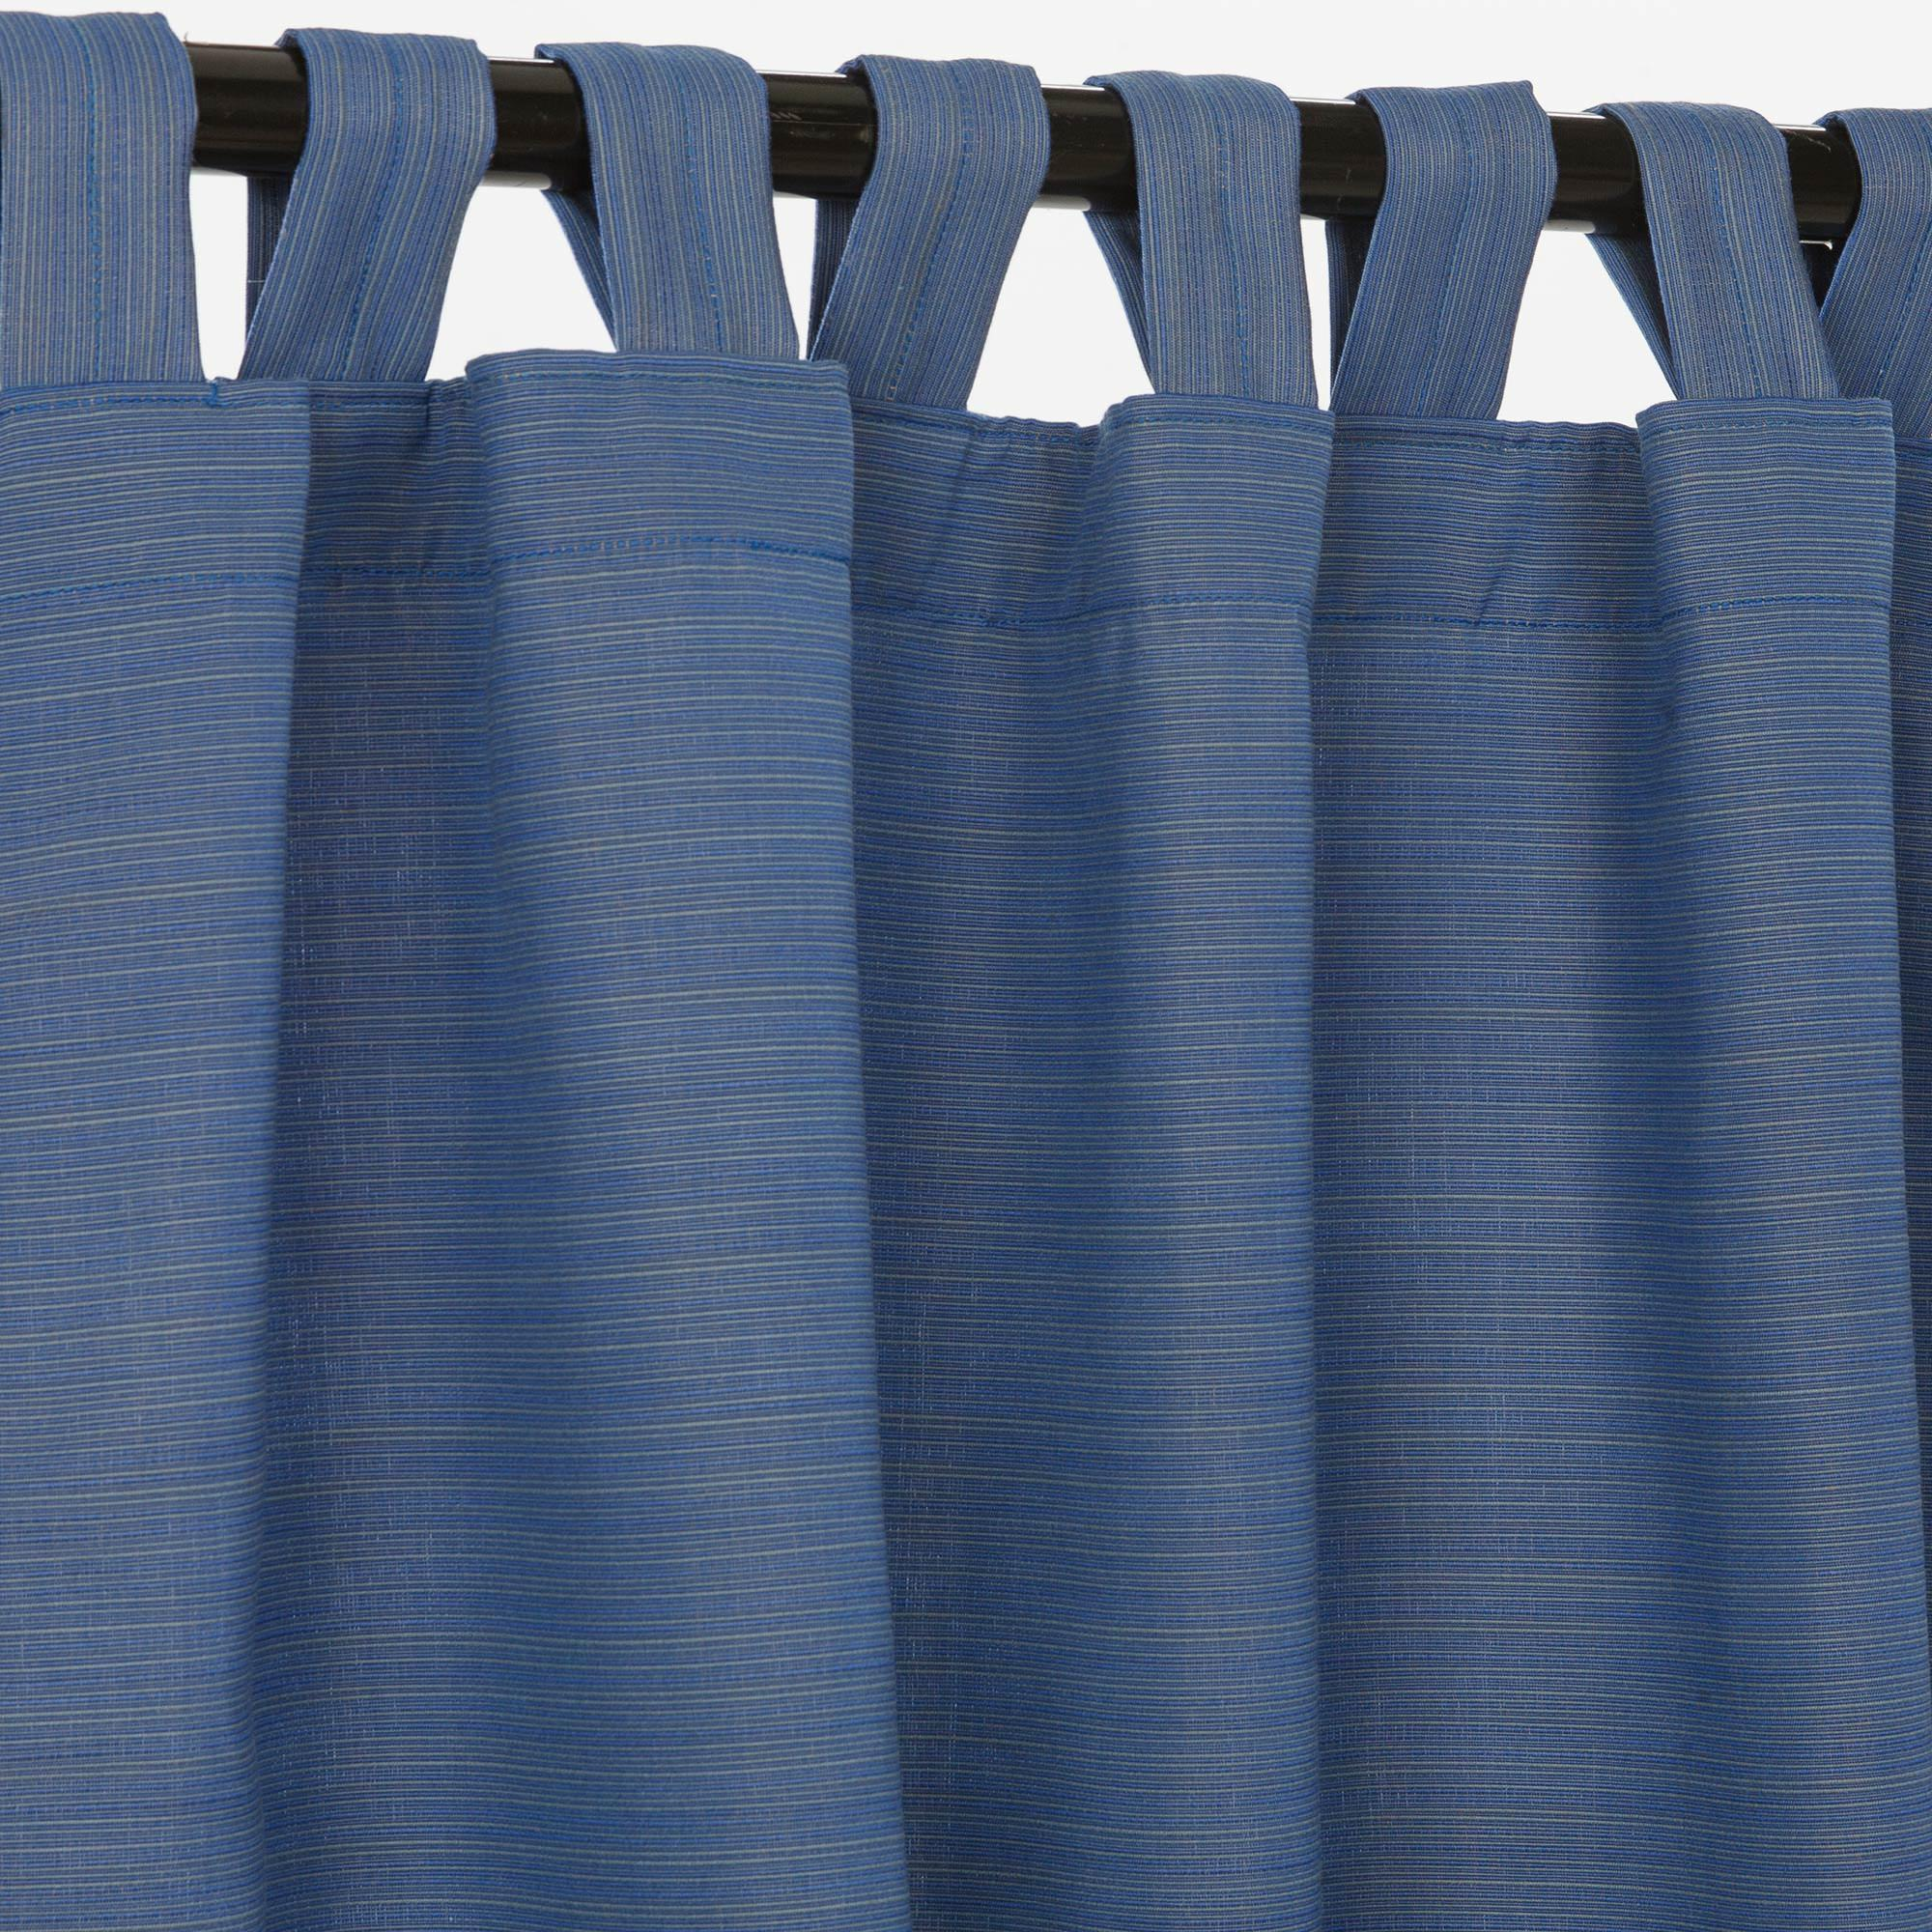 Sunbrella Outdoor Curtain With Tabs In Dupione Galaxy 50 X 84